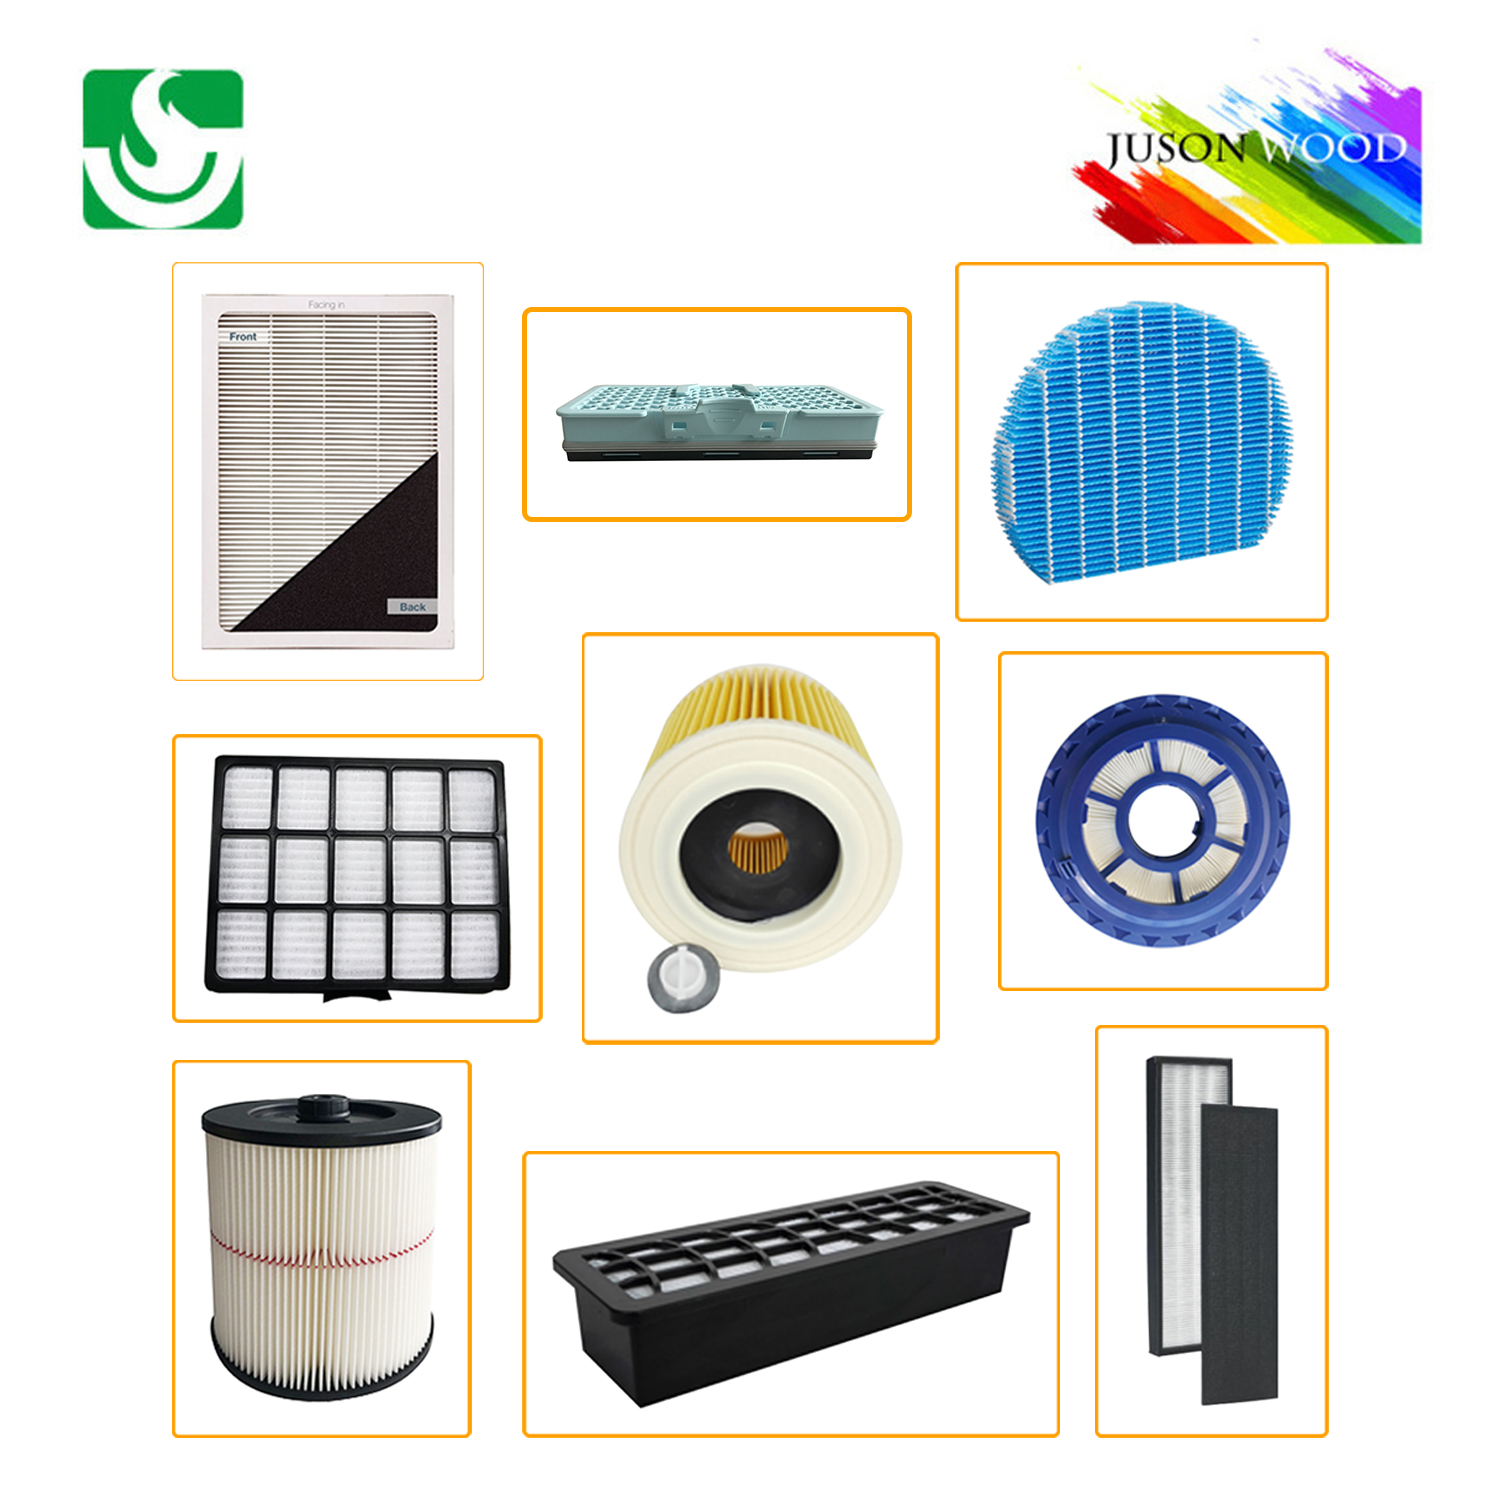 Air filter for craftsamn & LG & blueair & kenmore & K archer & Dyson & Samsung & Zelmer & Sharp